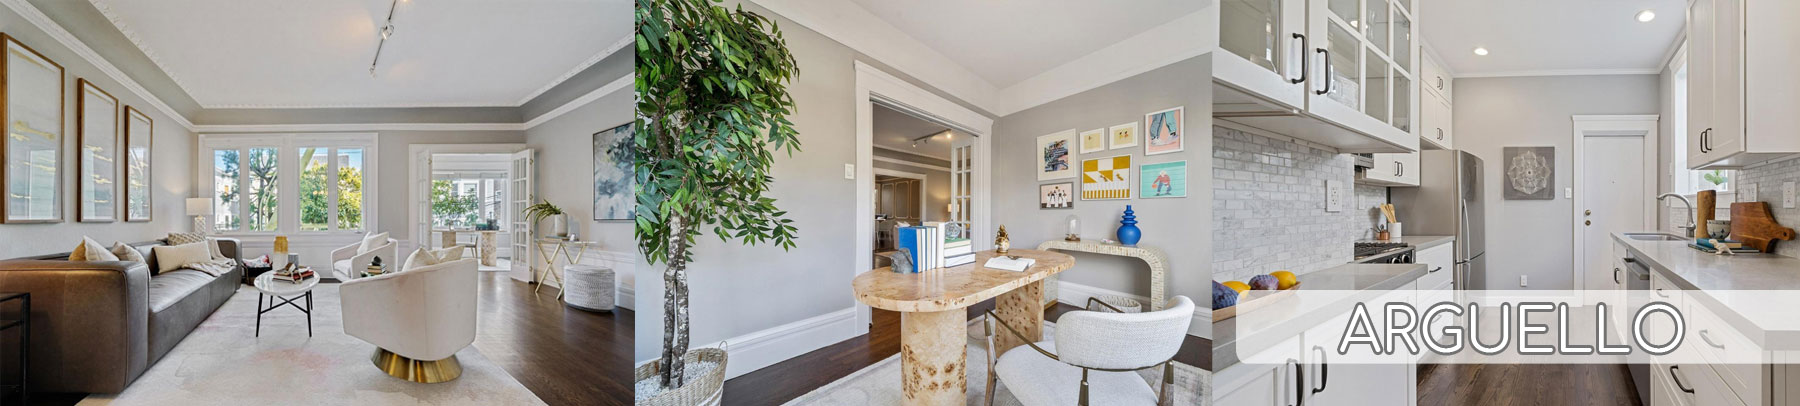 Arguello Staging Project